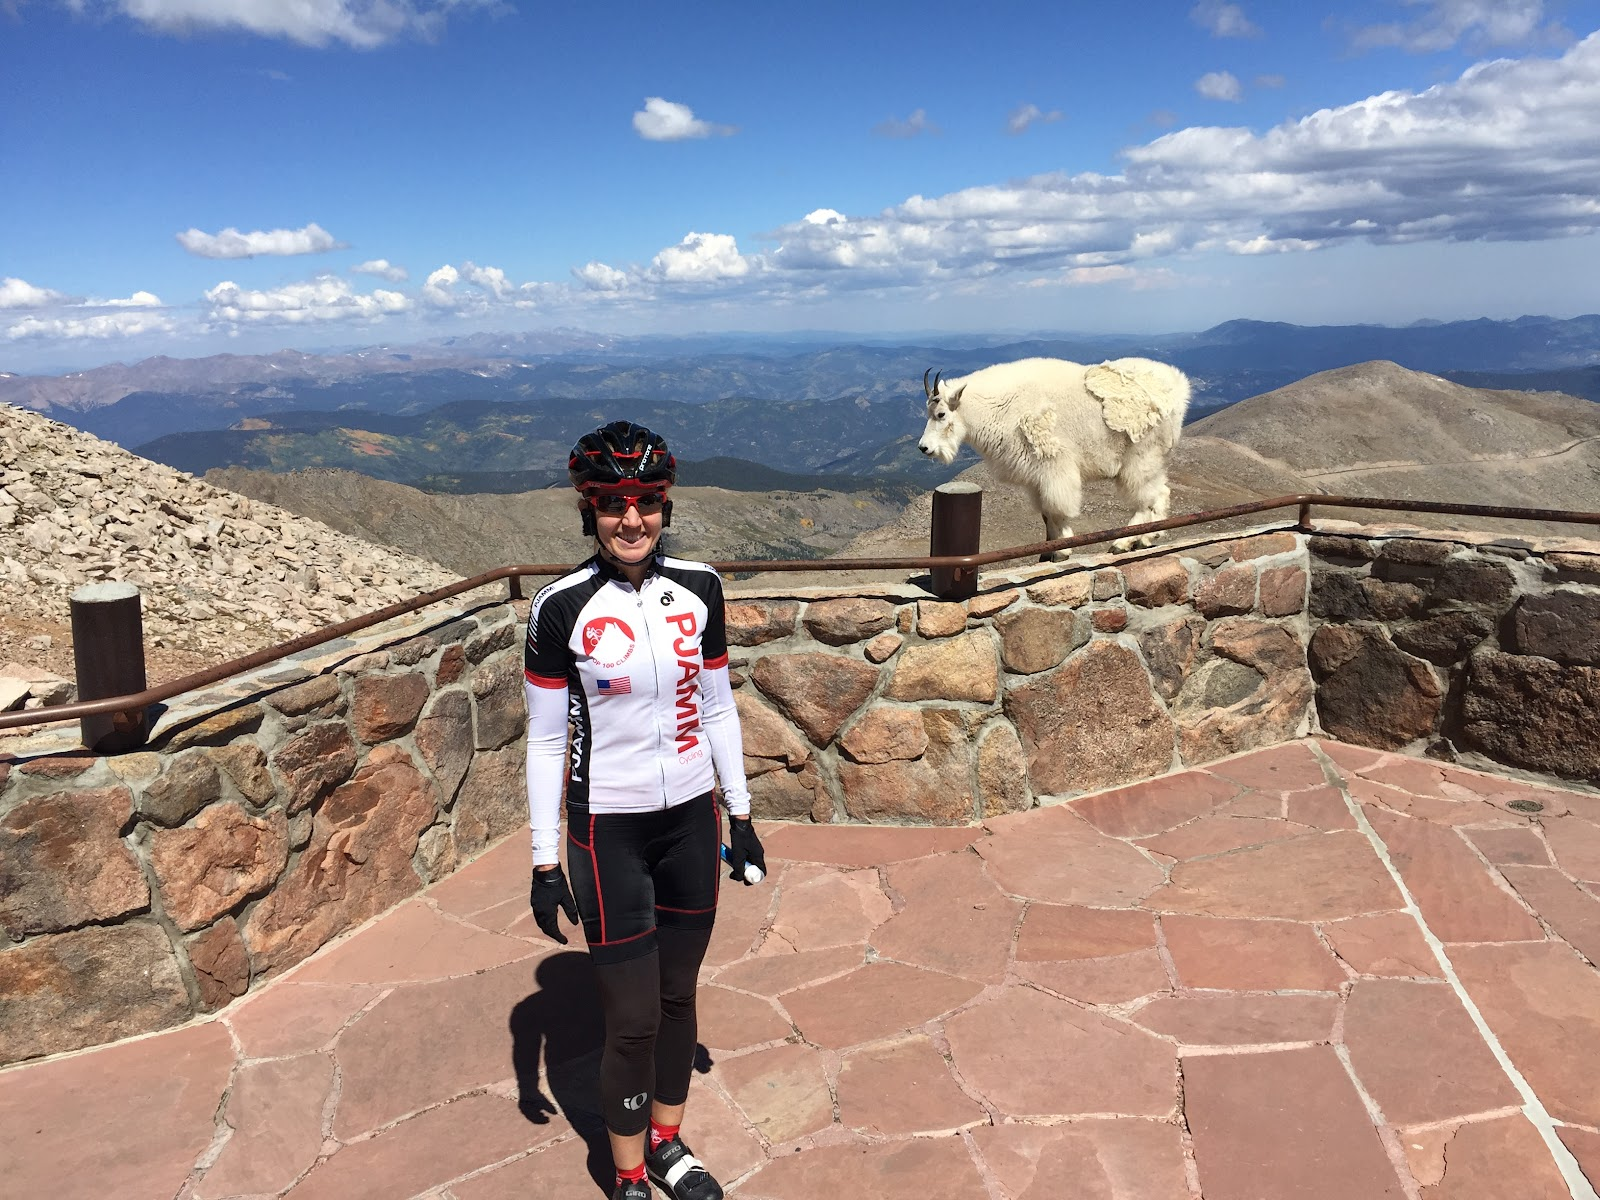 Cyclist and Mountain Goat at Summit of Mount Evans, Colorado